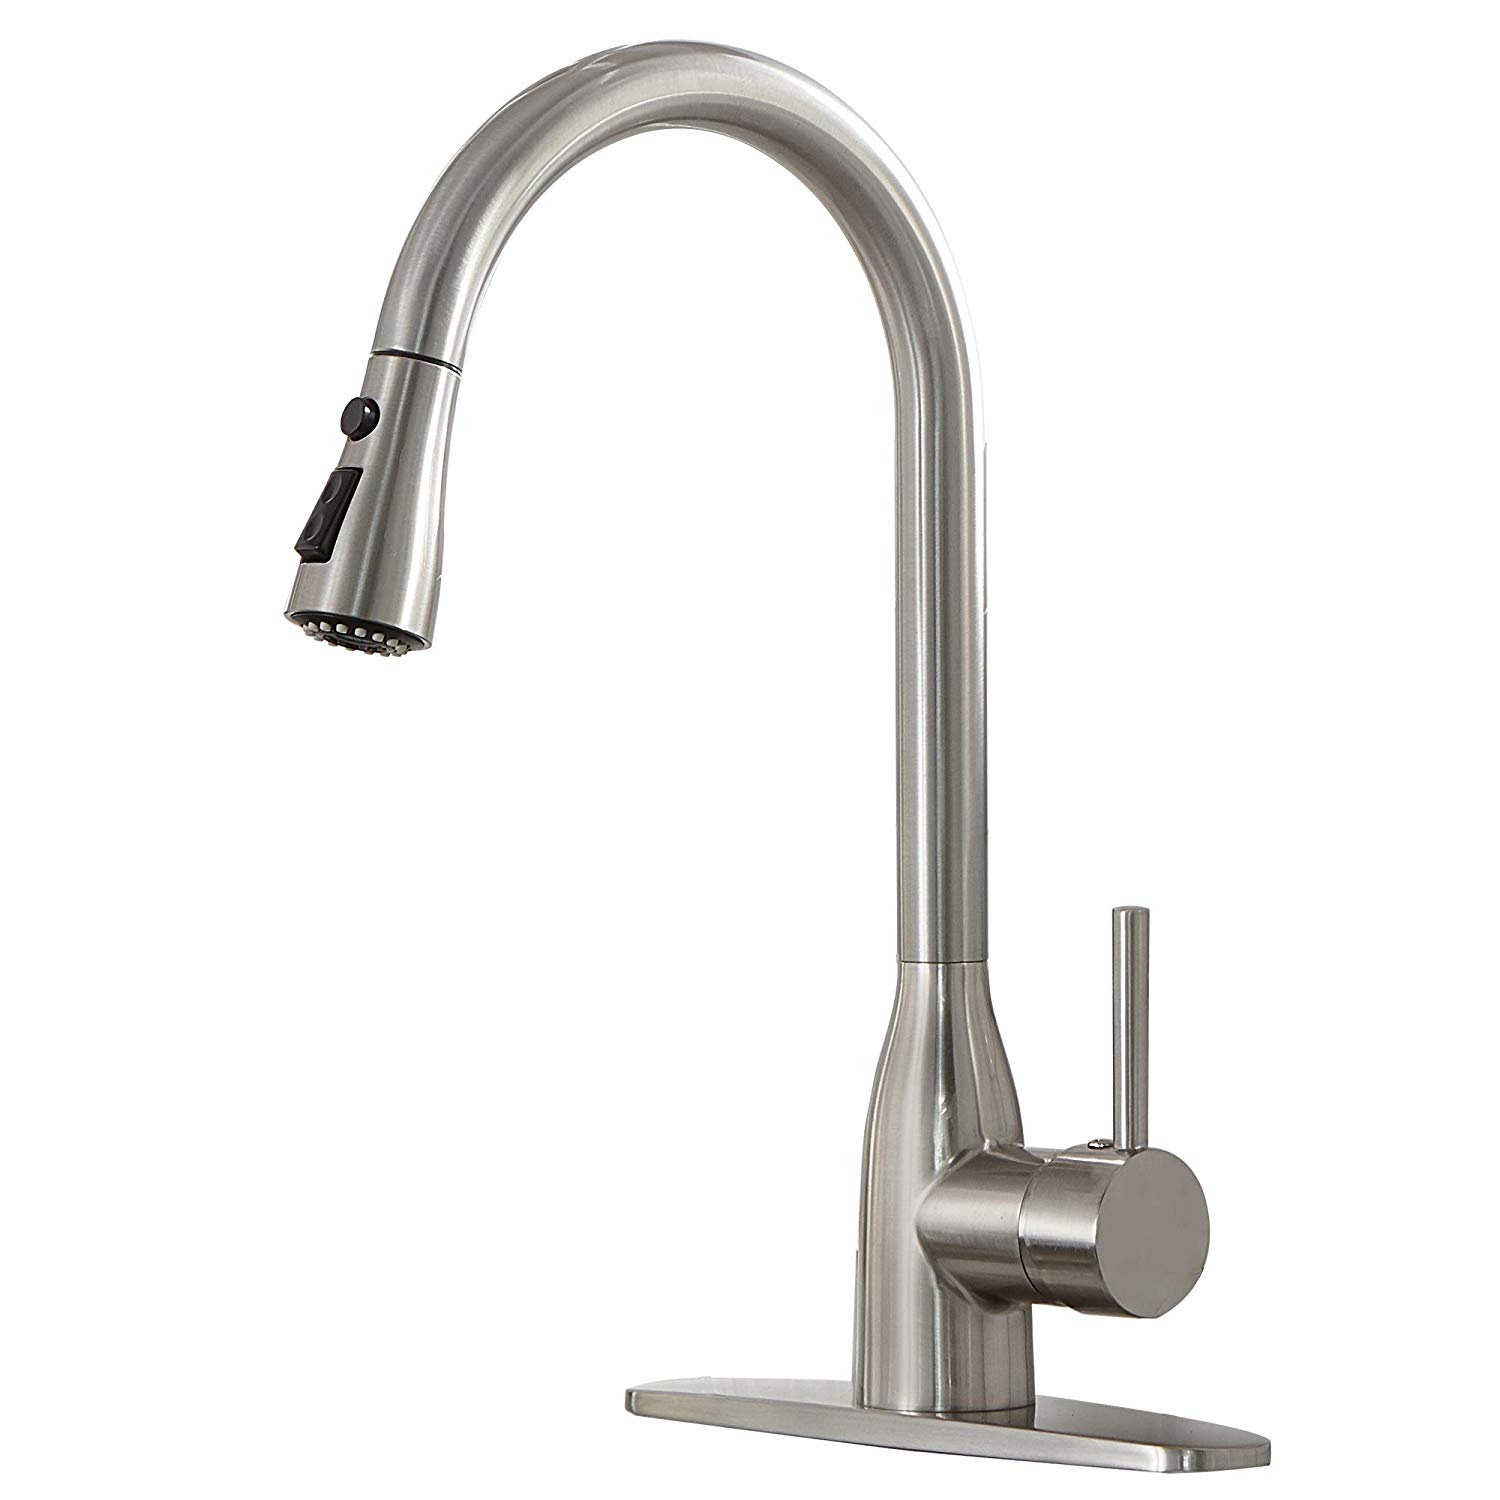 VESLA HOME Single Handle High Arc Stainless Steel Single Handle Brushed Nickel Pull Down Sprayer Kitchen Sink Faucet, Kitchen Faucets with Deck Plate